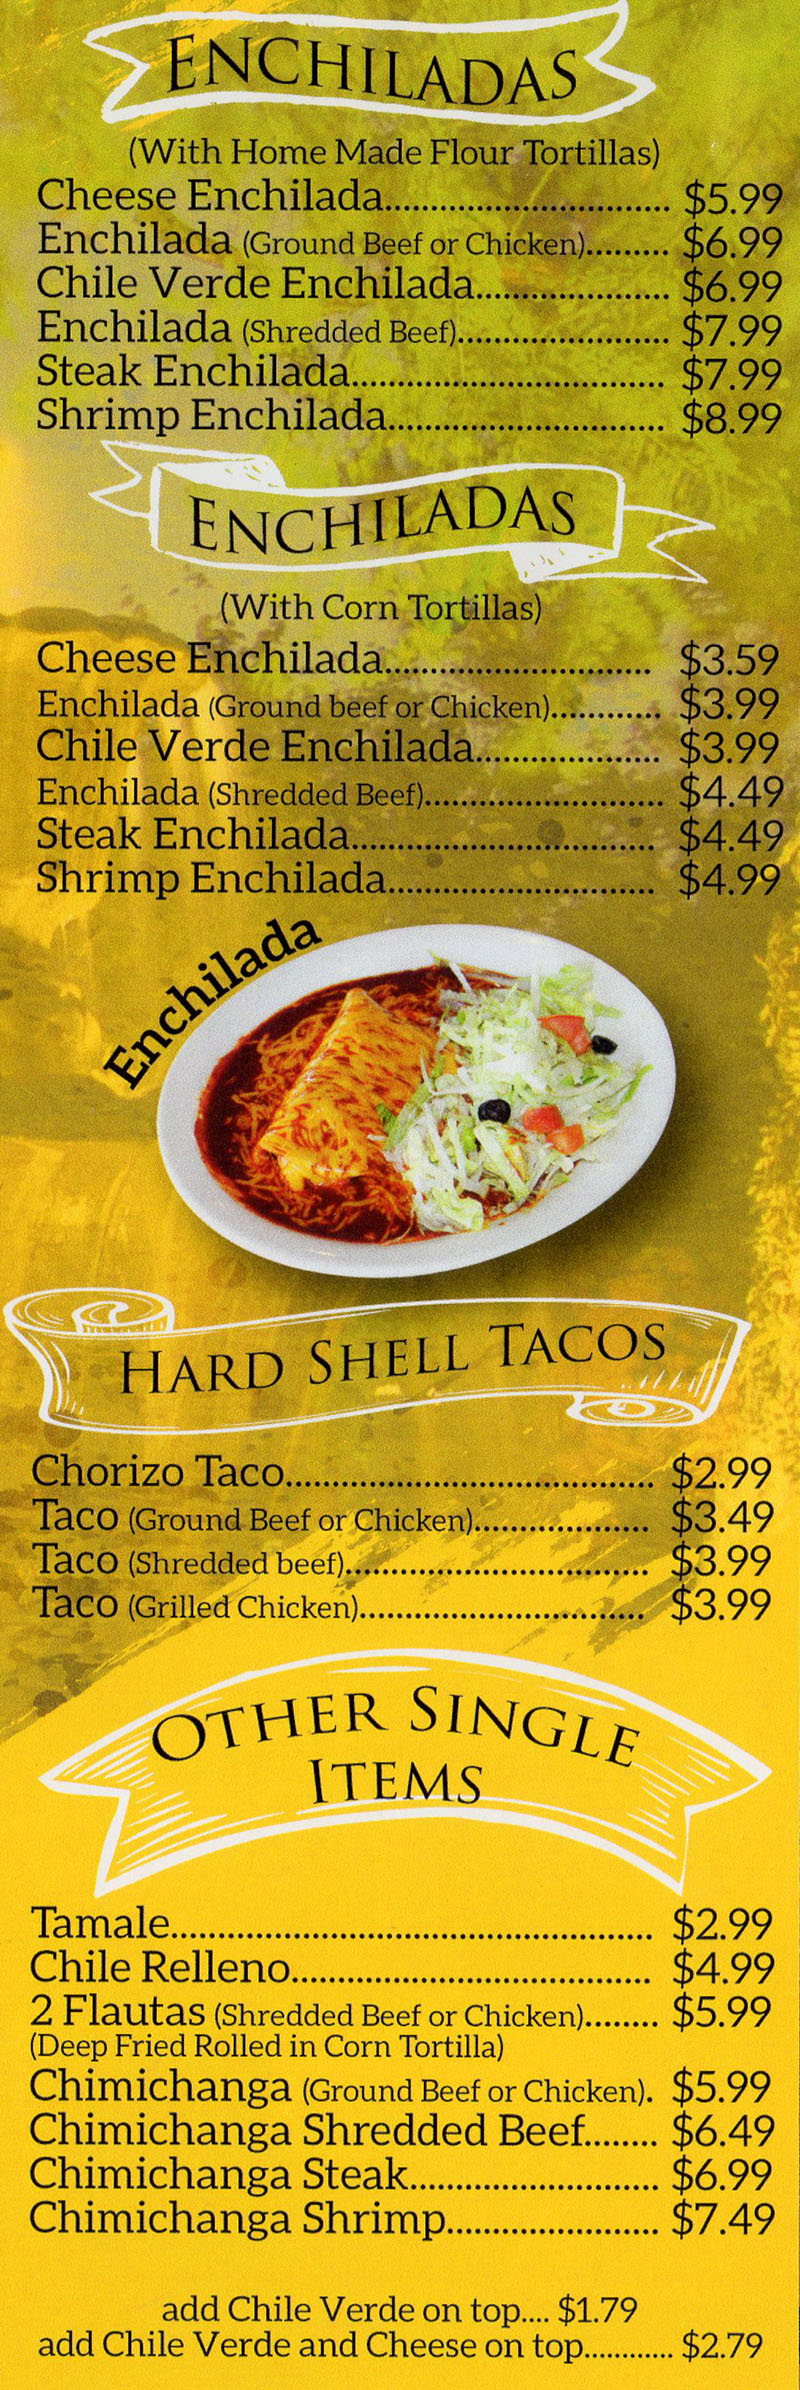 La Fountain menu - enchiladas, hard shell tacos - ala carte